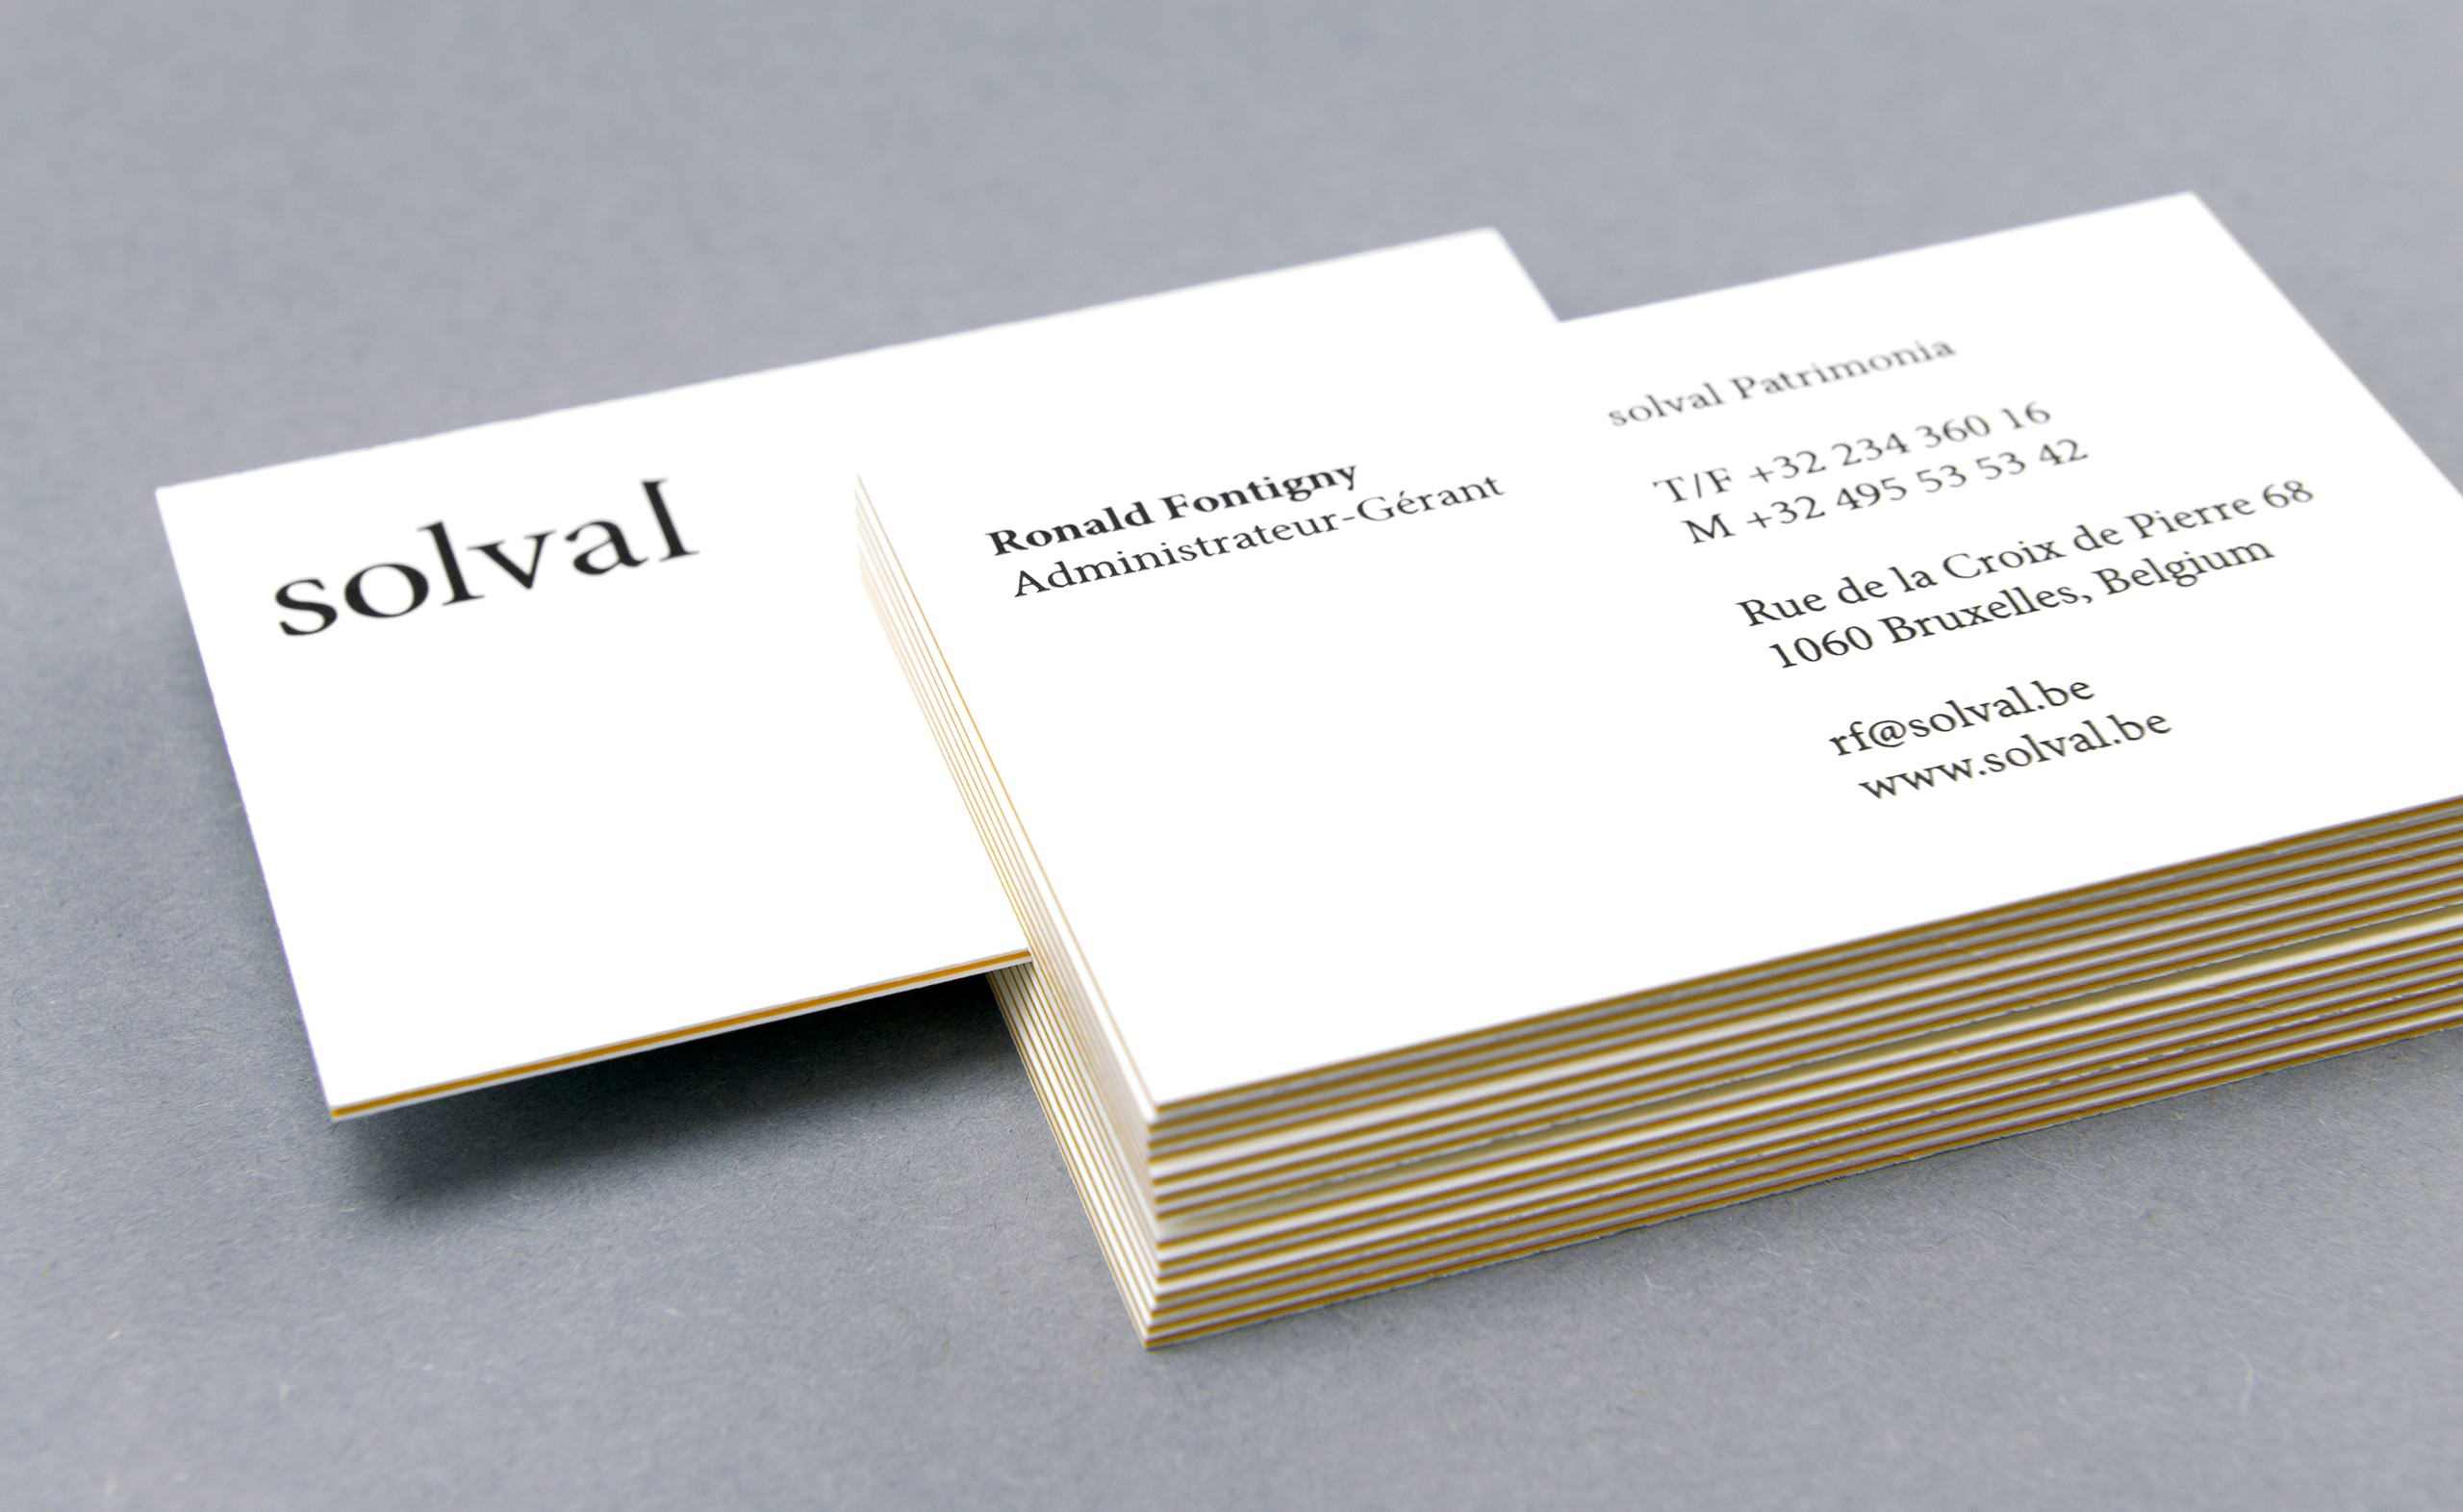 Business Card Solval